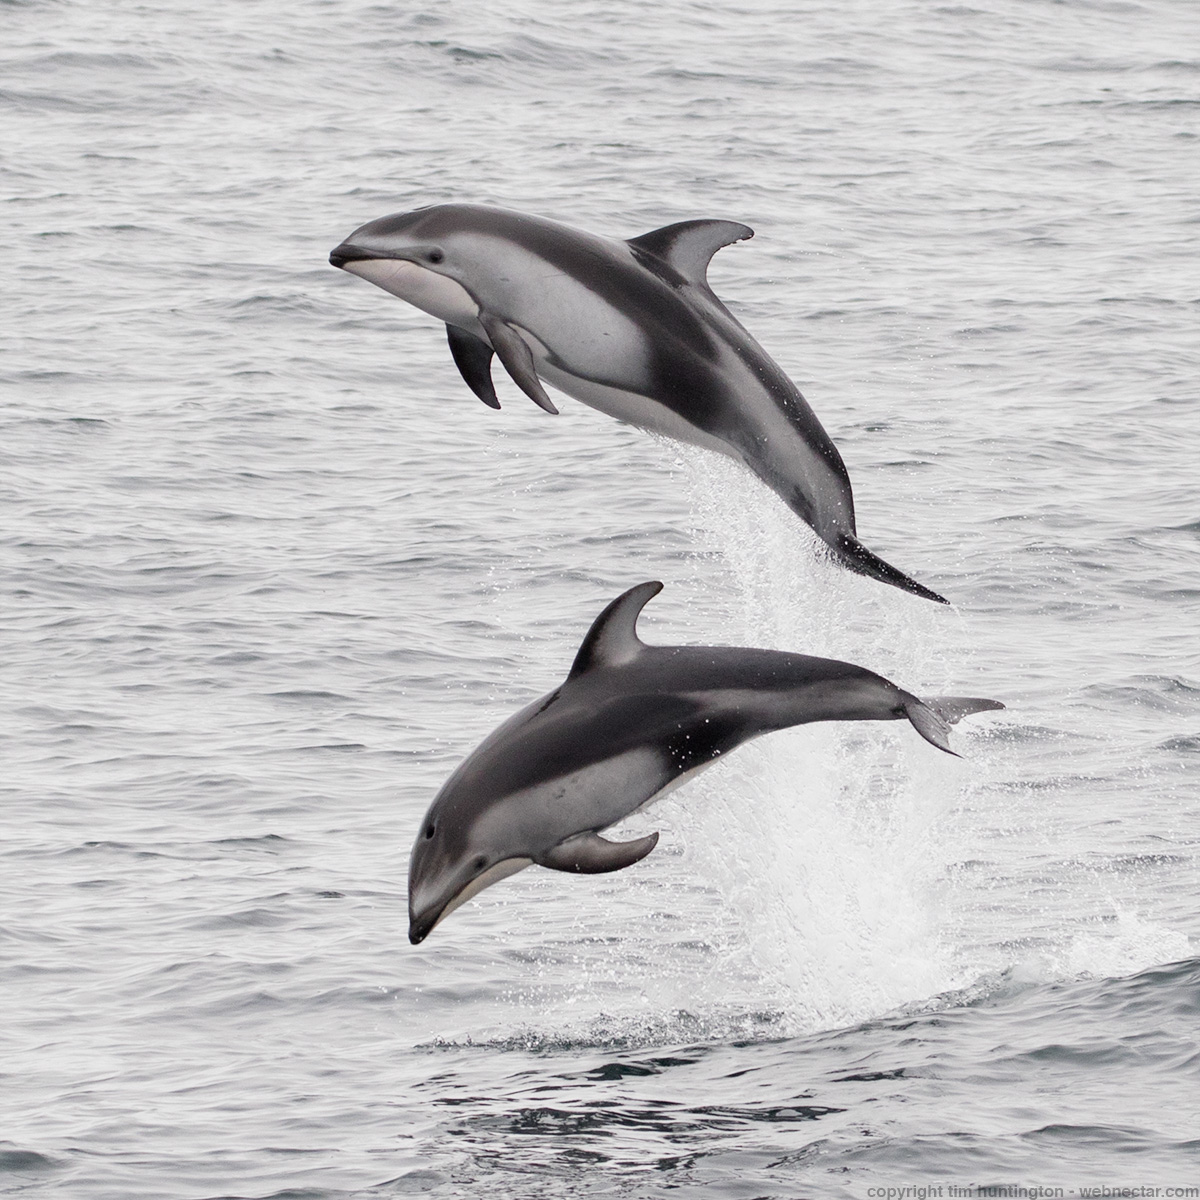 Pacific white-sided dolphins leaping out of Monterey Bay.